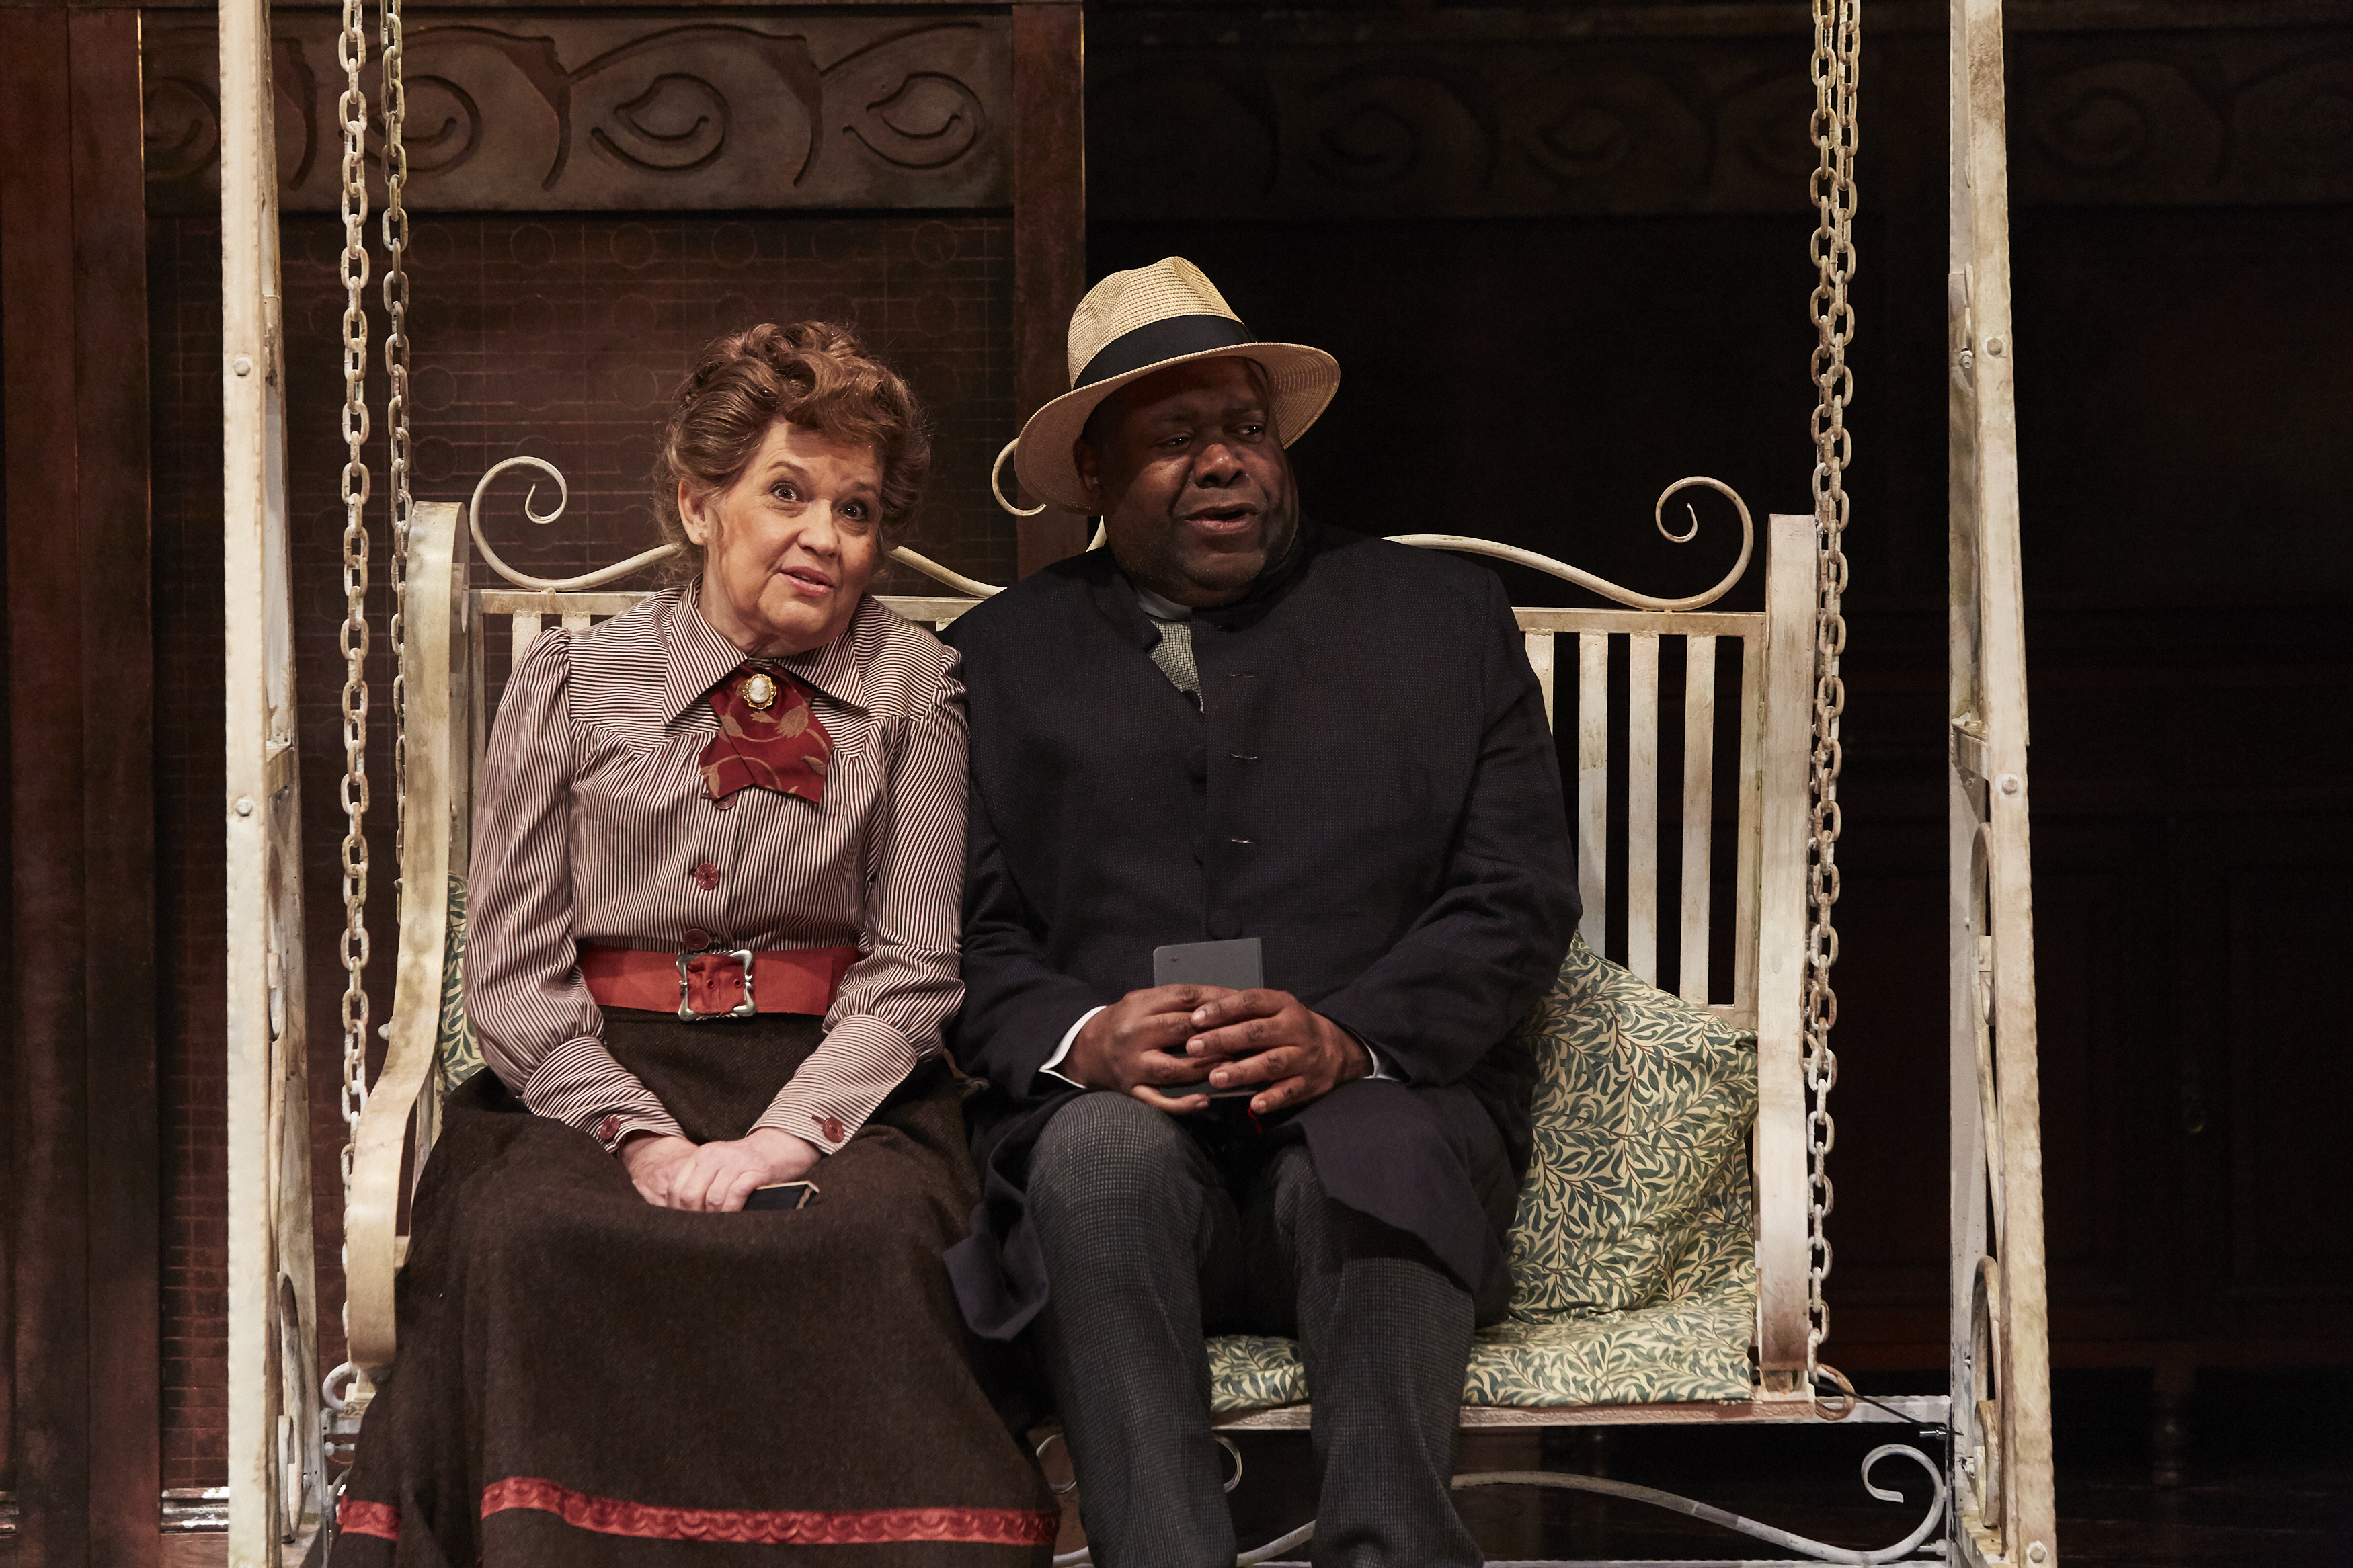 Susan Penhaligon as Miss Prism & Geoff Aymer as Chasuble in THE IMPORTANCE OF BEING EARNEST, credit The Other Richard